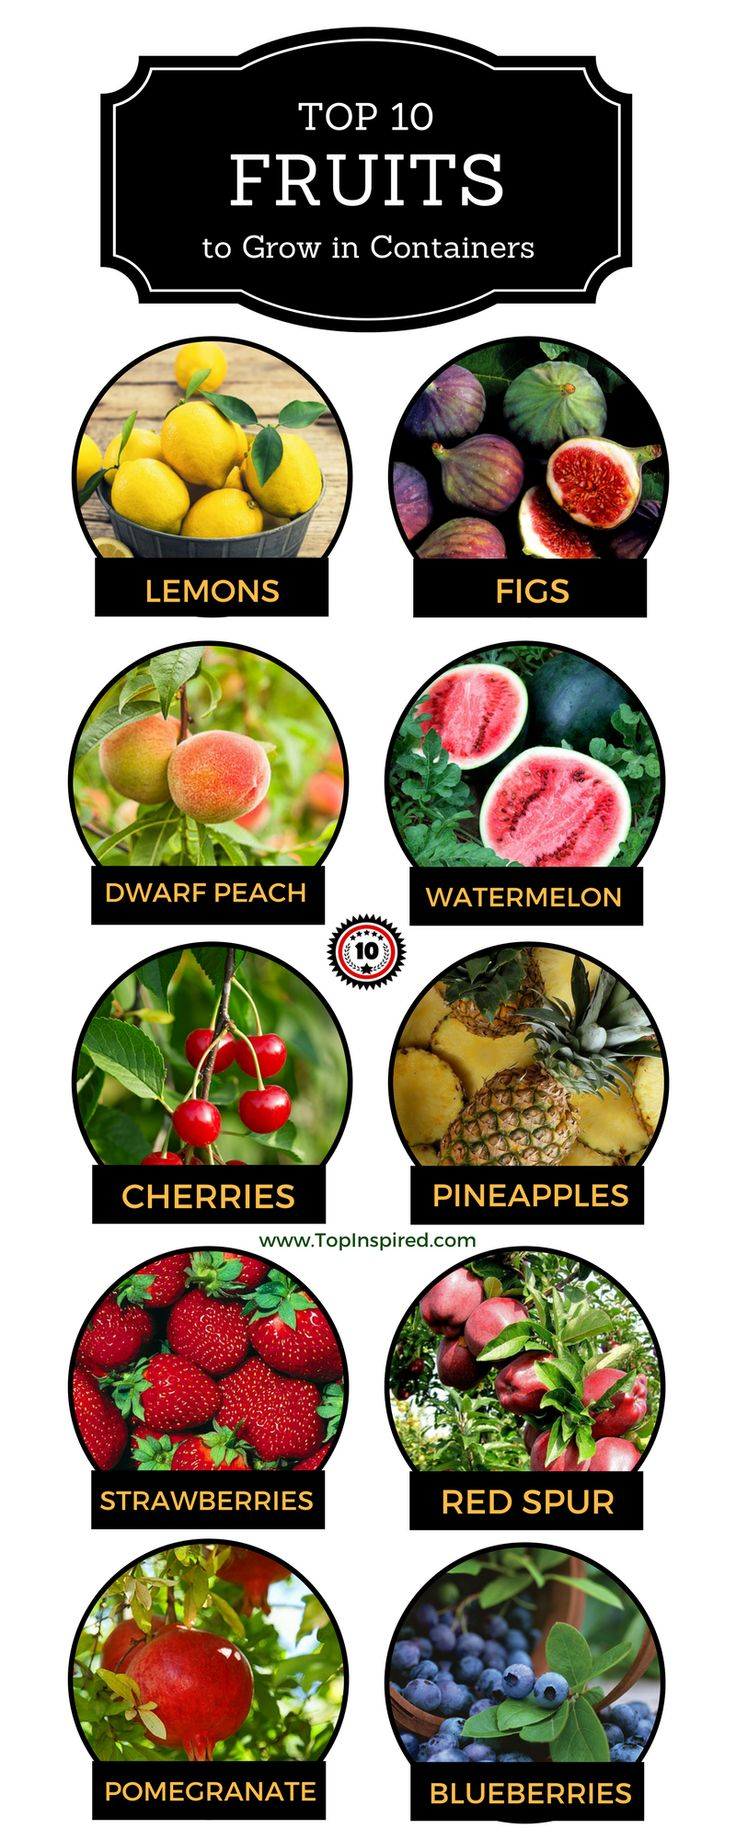 Top 10 Fruits You Can Grow in a Container